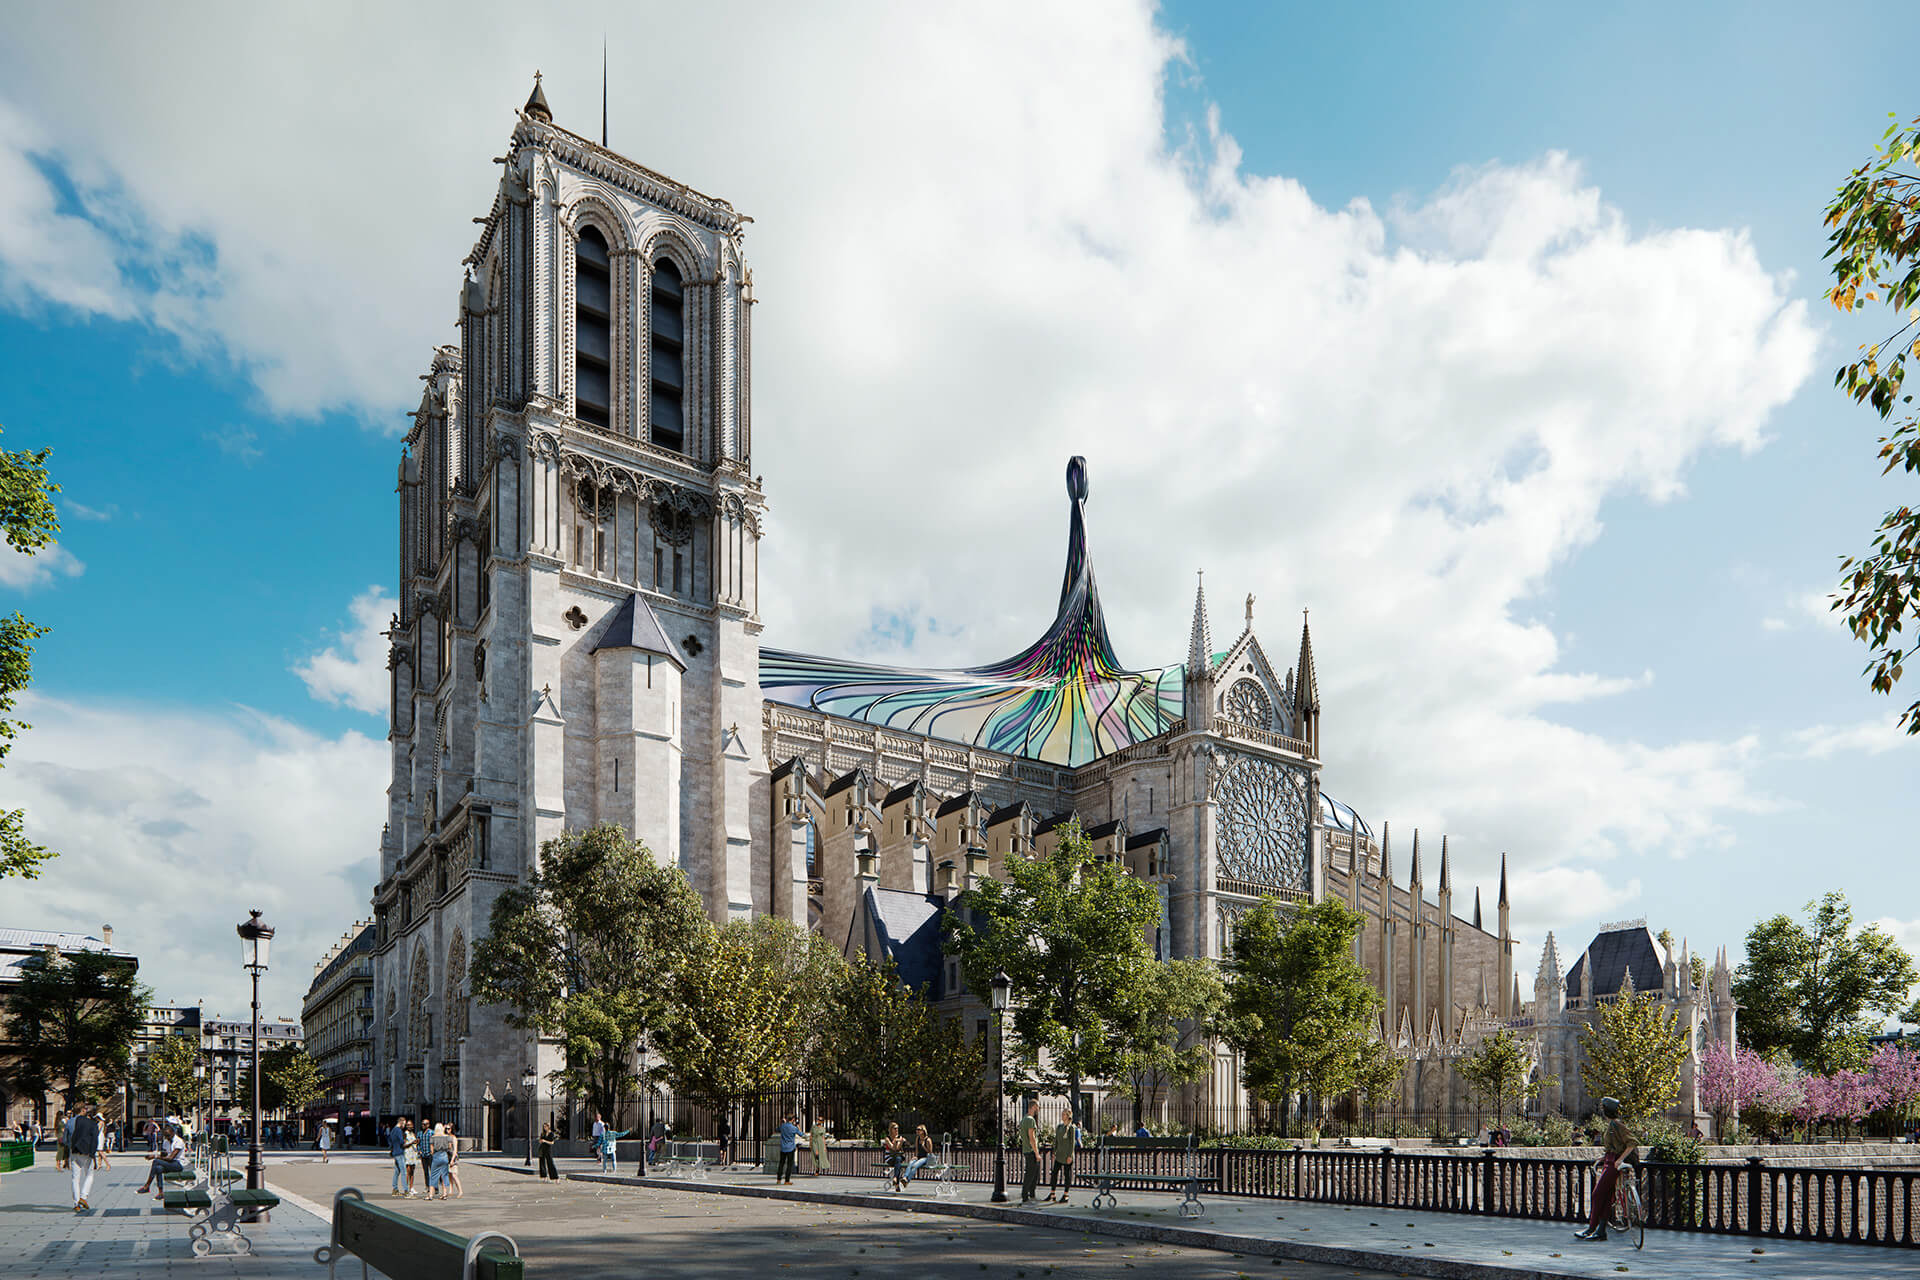 The rebuilt Notre Dame cathedral, as imagined by Trnsfrm | Notre Dame cathedral roof restoration proposal by Trnsfrm | STIRworld